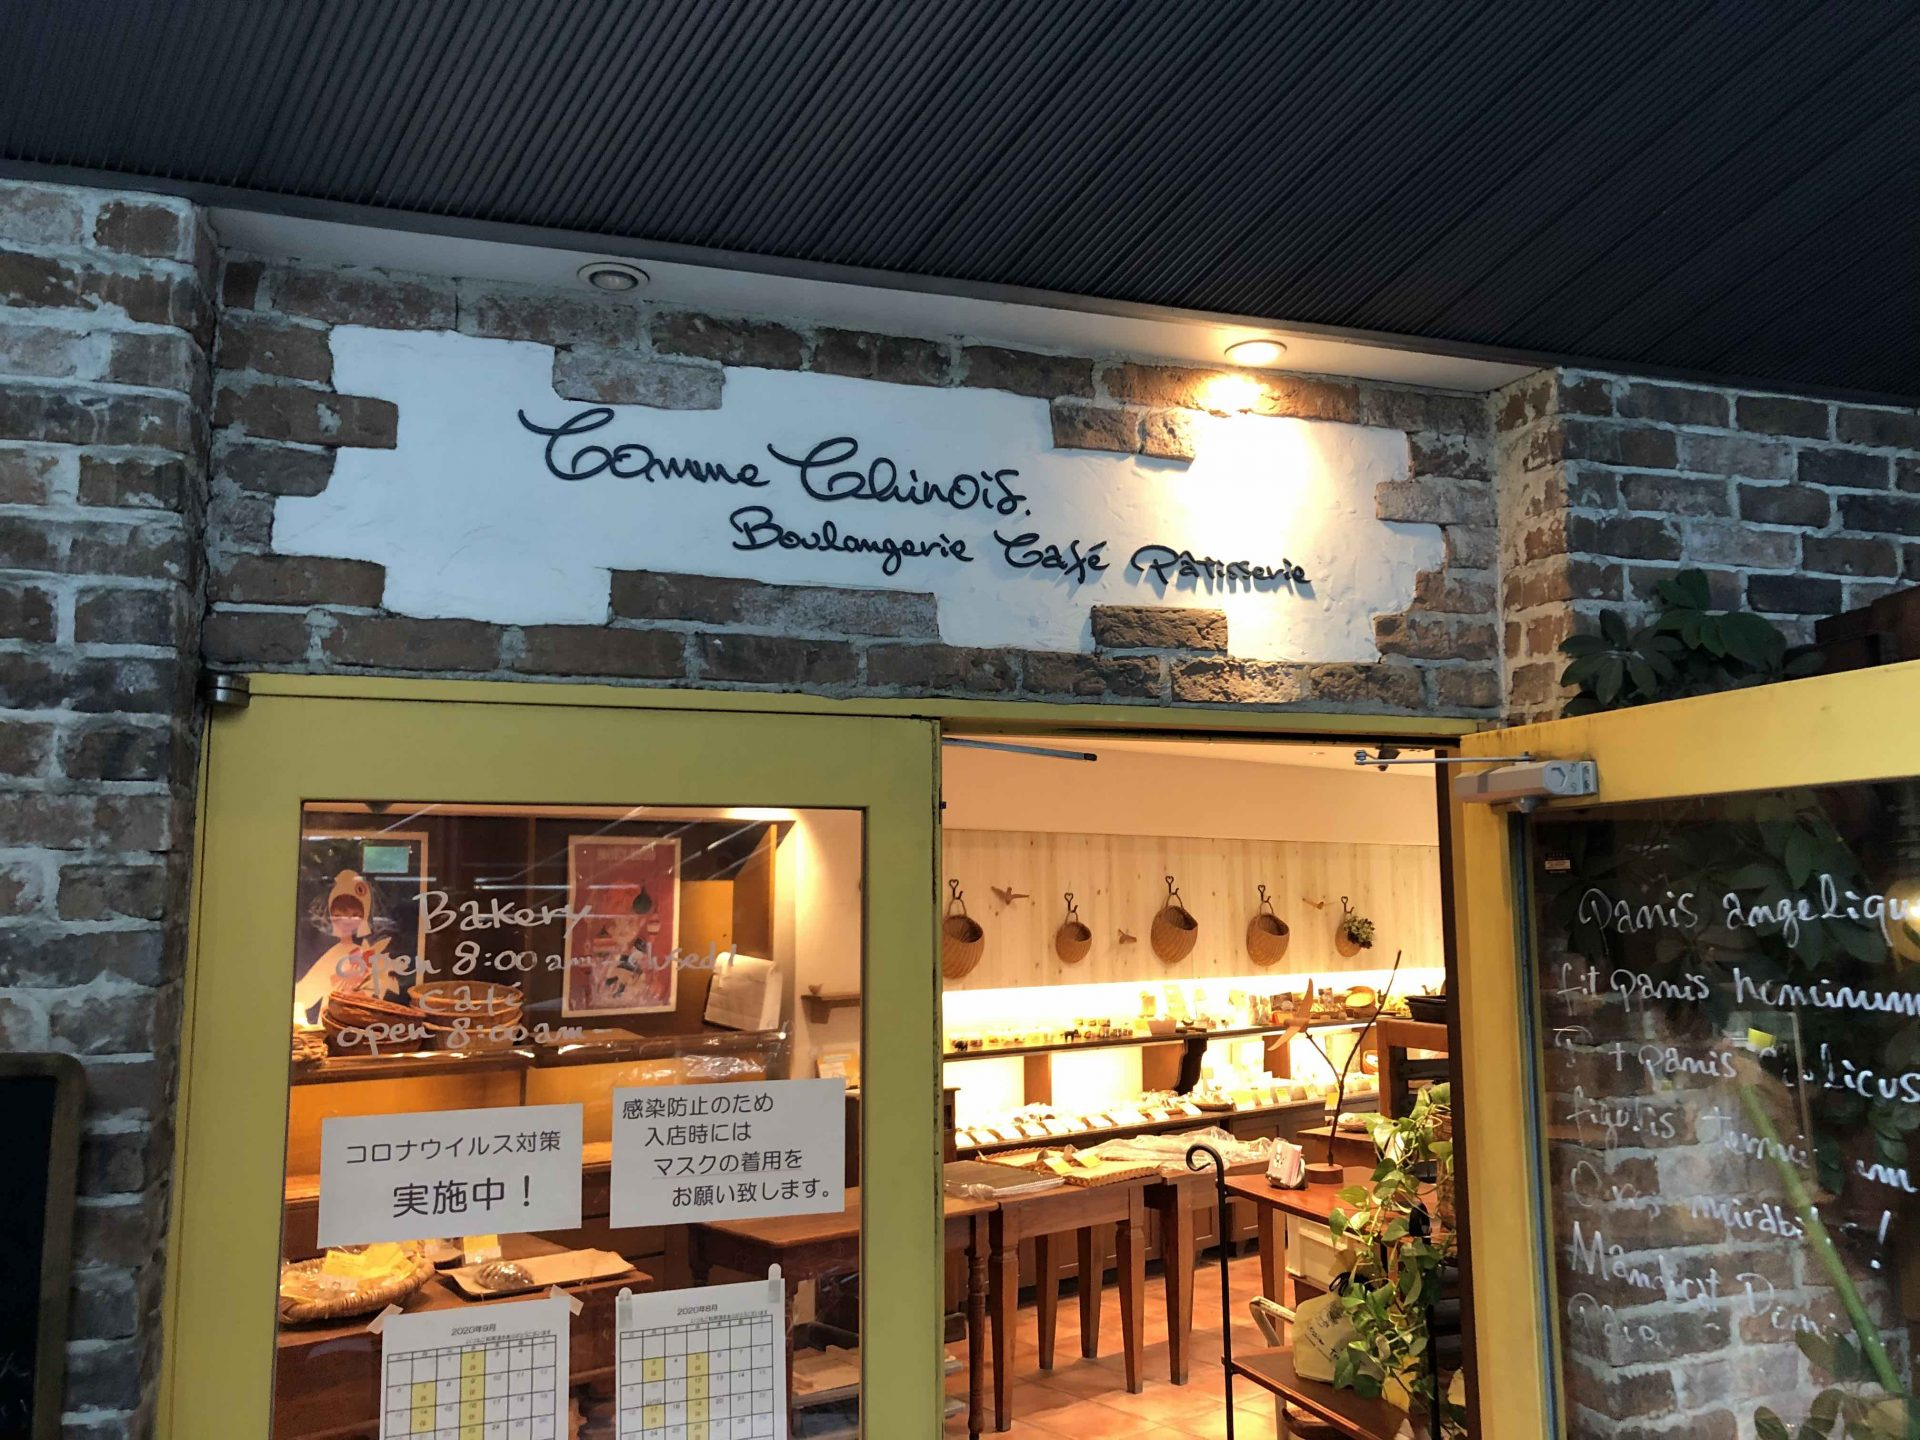 comme chinois boulangerie